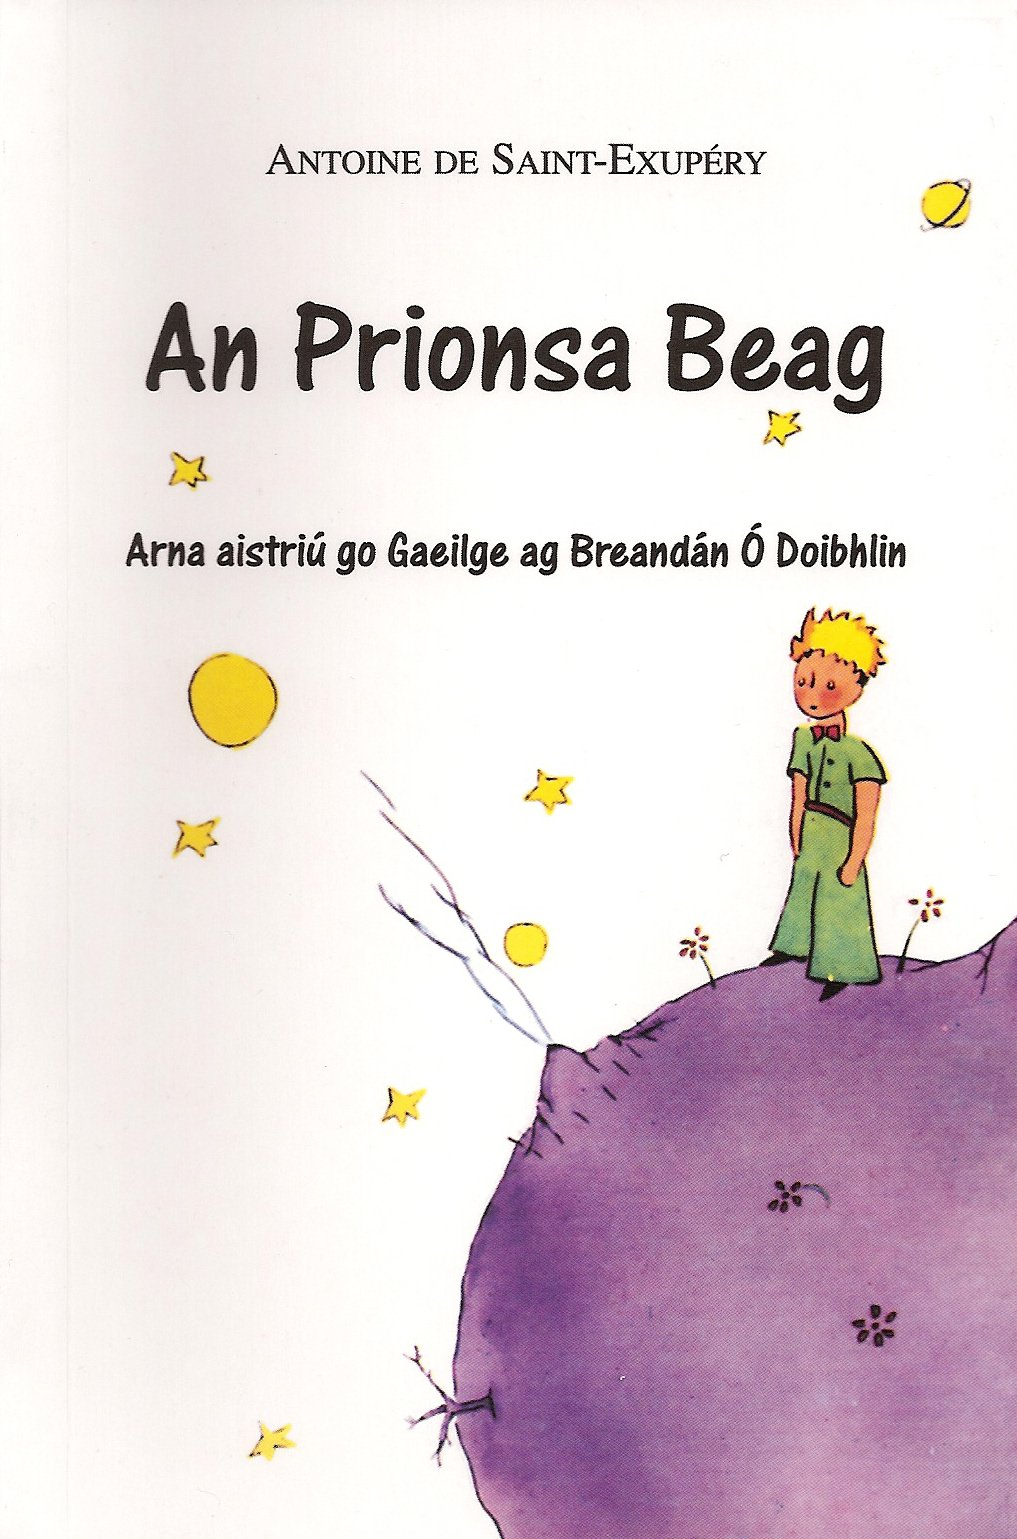 An Prionsa Beag: The Little Prince (Irish) Paperback – Sep 2007. by Antoine  de Saint-Exupery ...